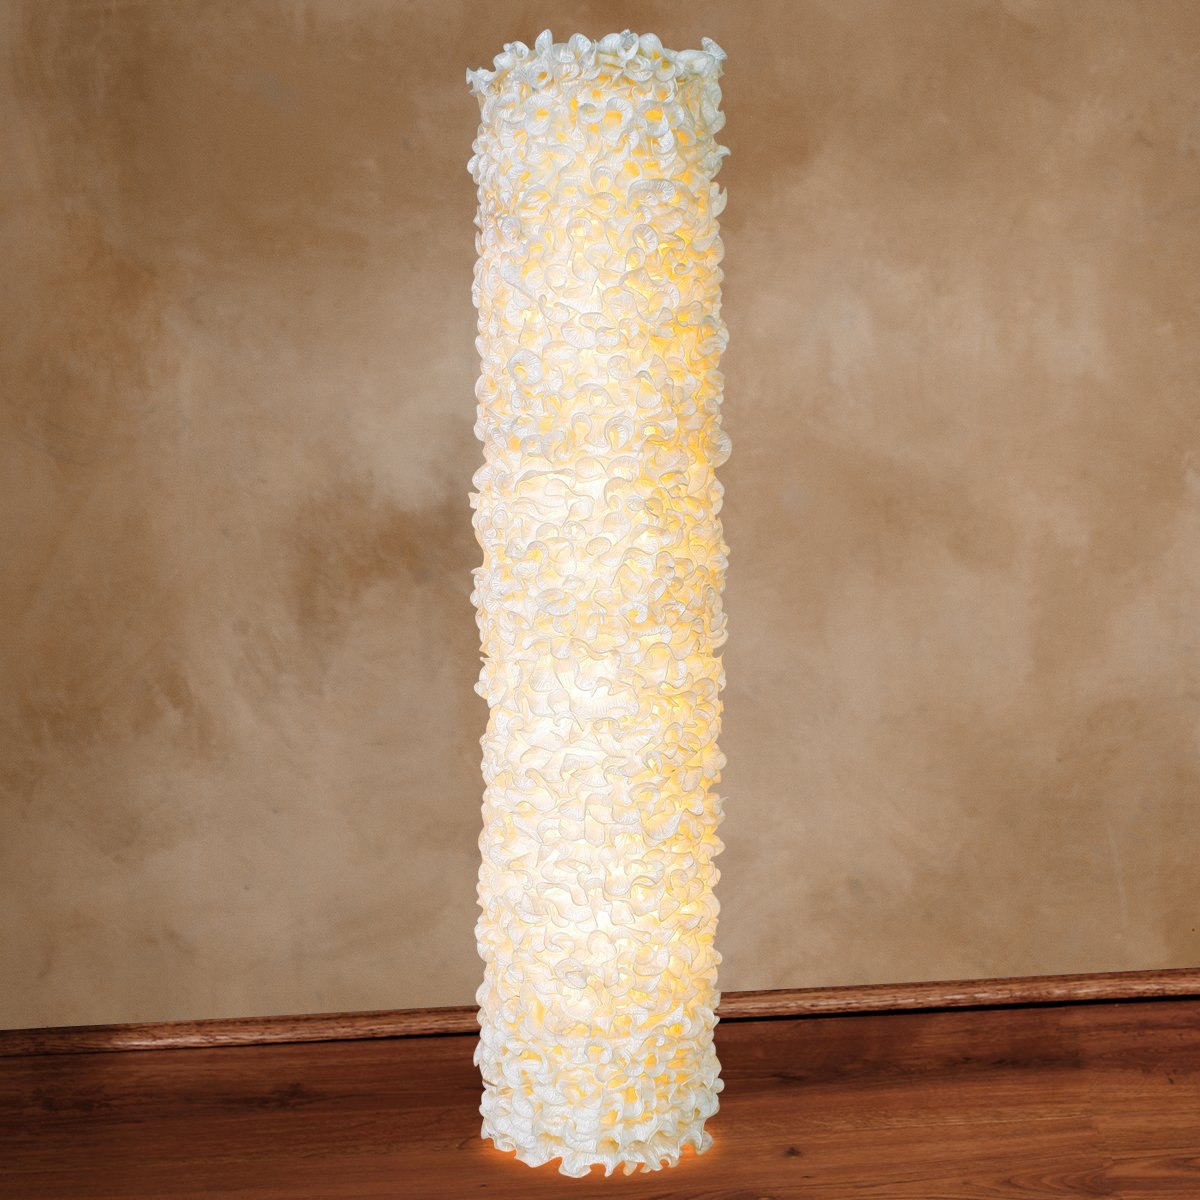 - Lace Tower Floor Lamp - Table Lamps - Amazon.com